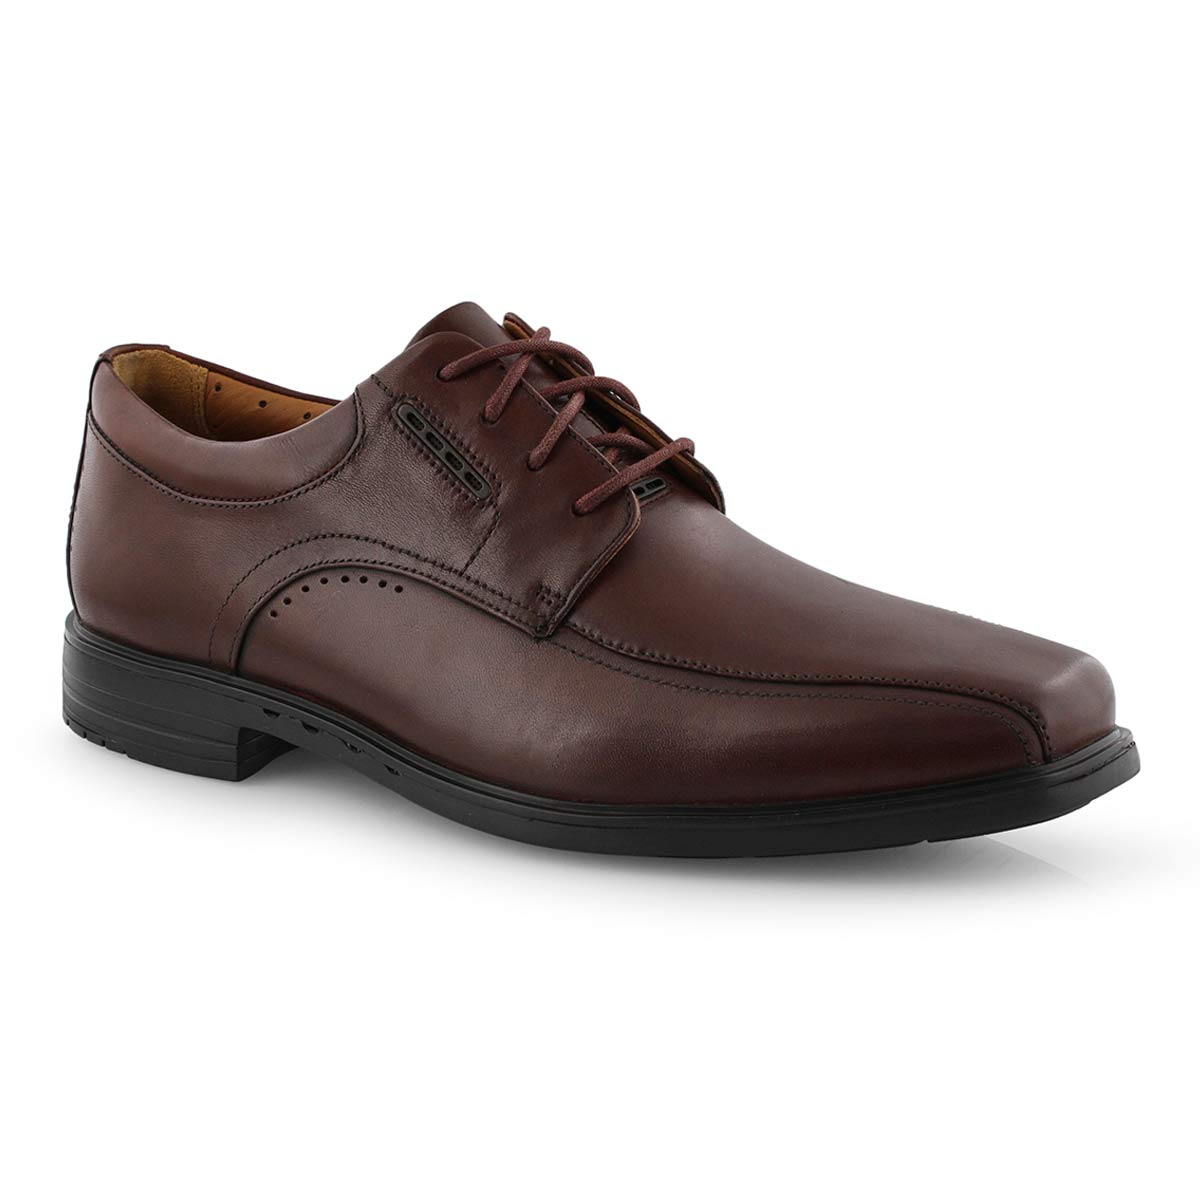 Mns UnKenneth Way brown dress shoe-wide